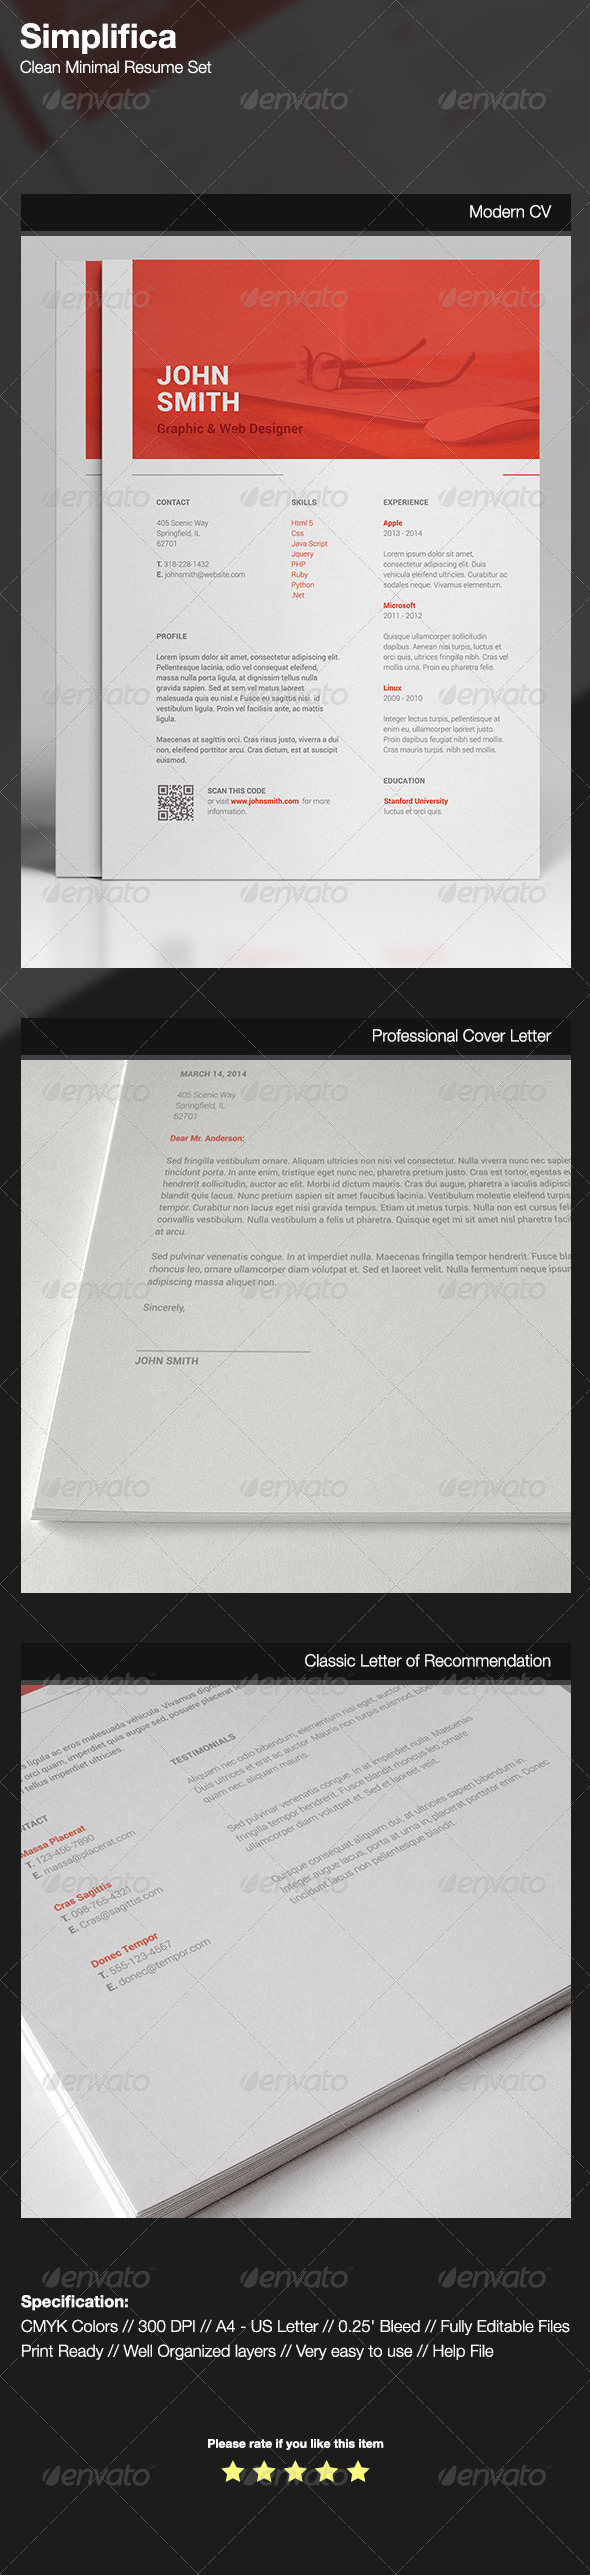 GraphicRiver Simplifica Clean Minimal Resume Set 7556183